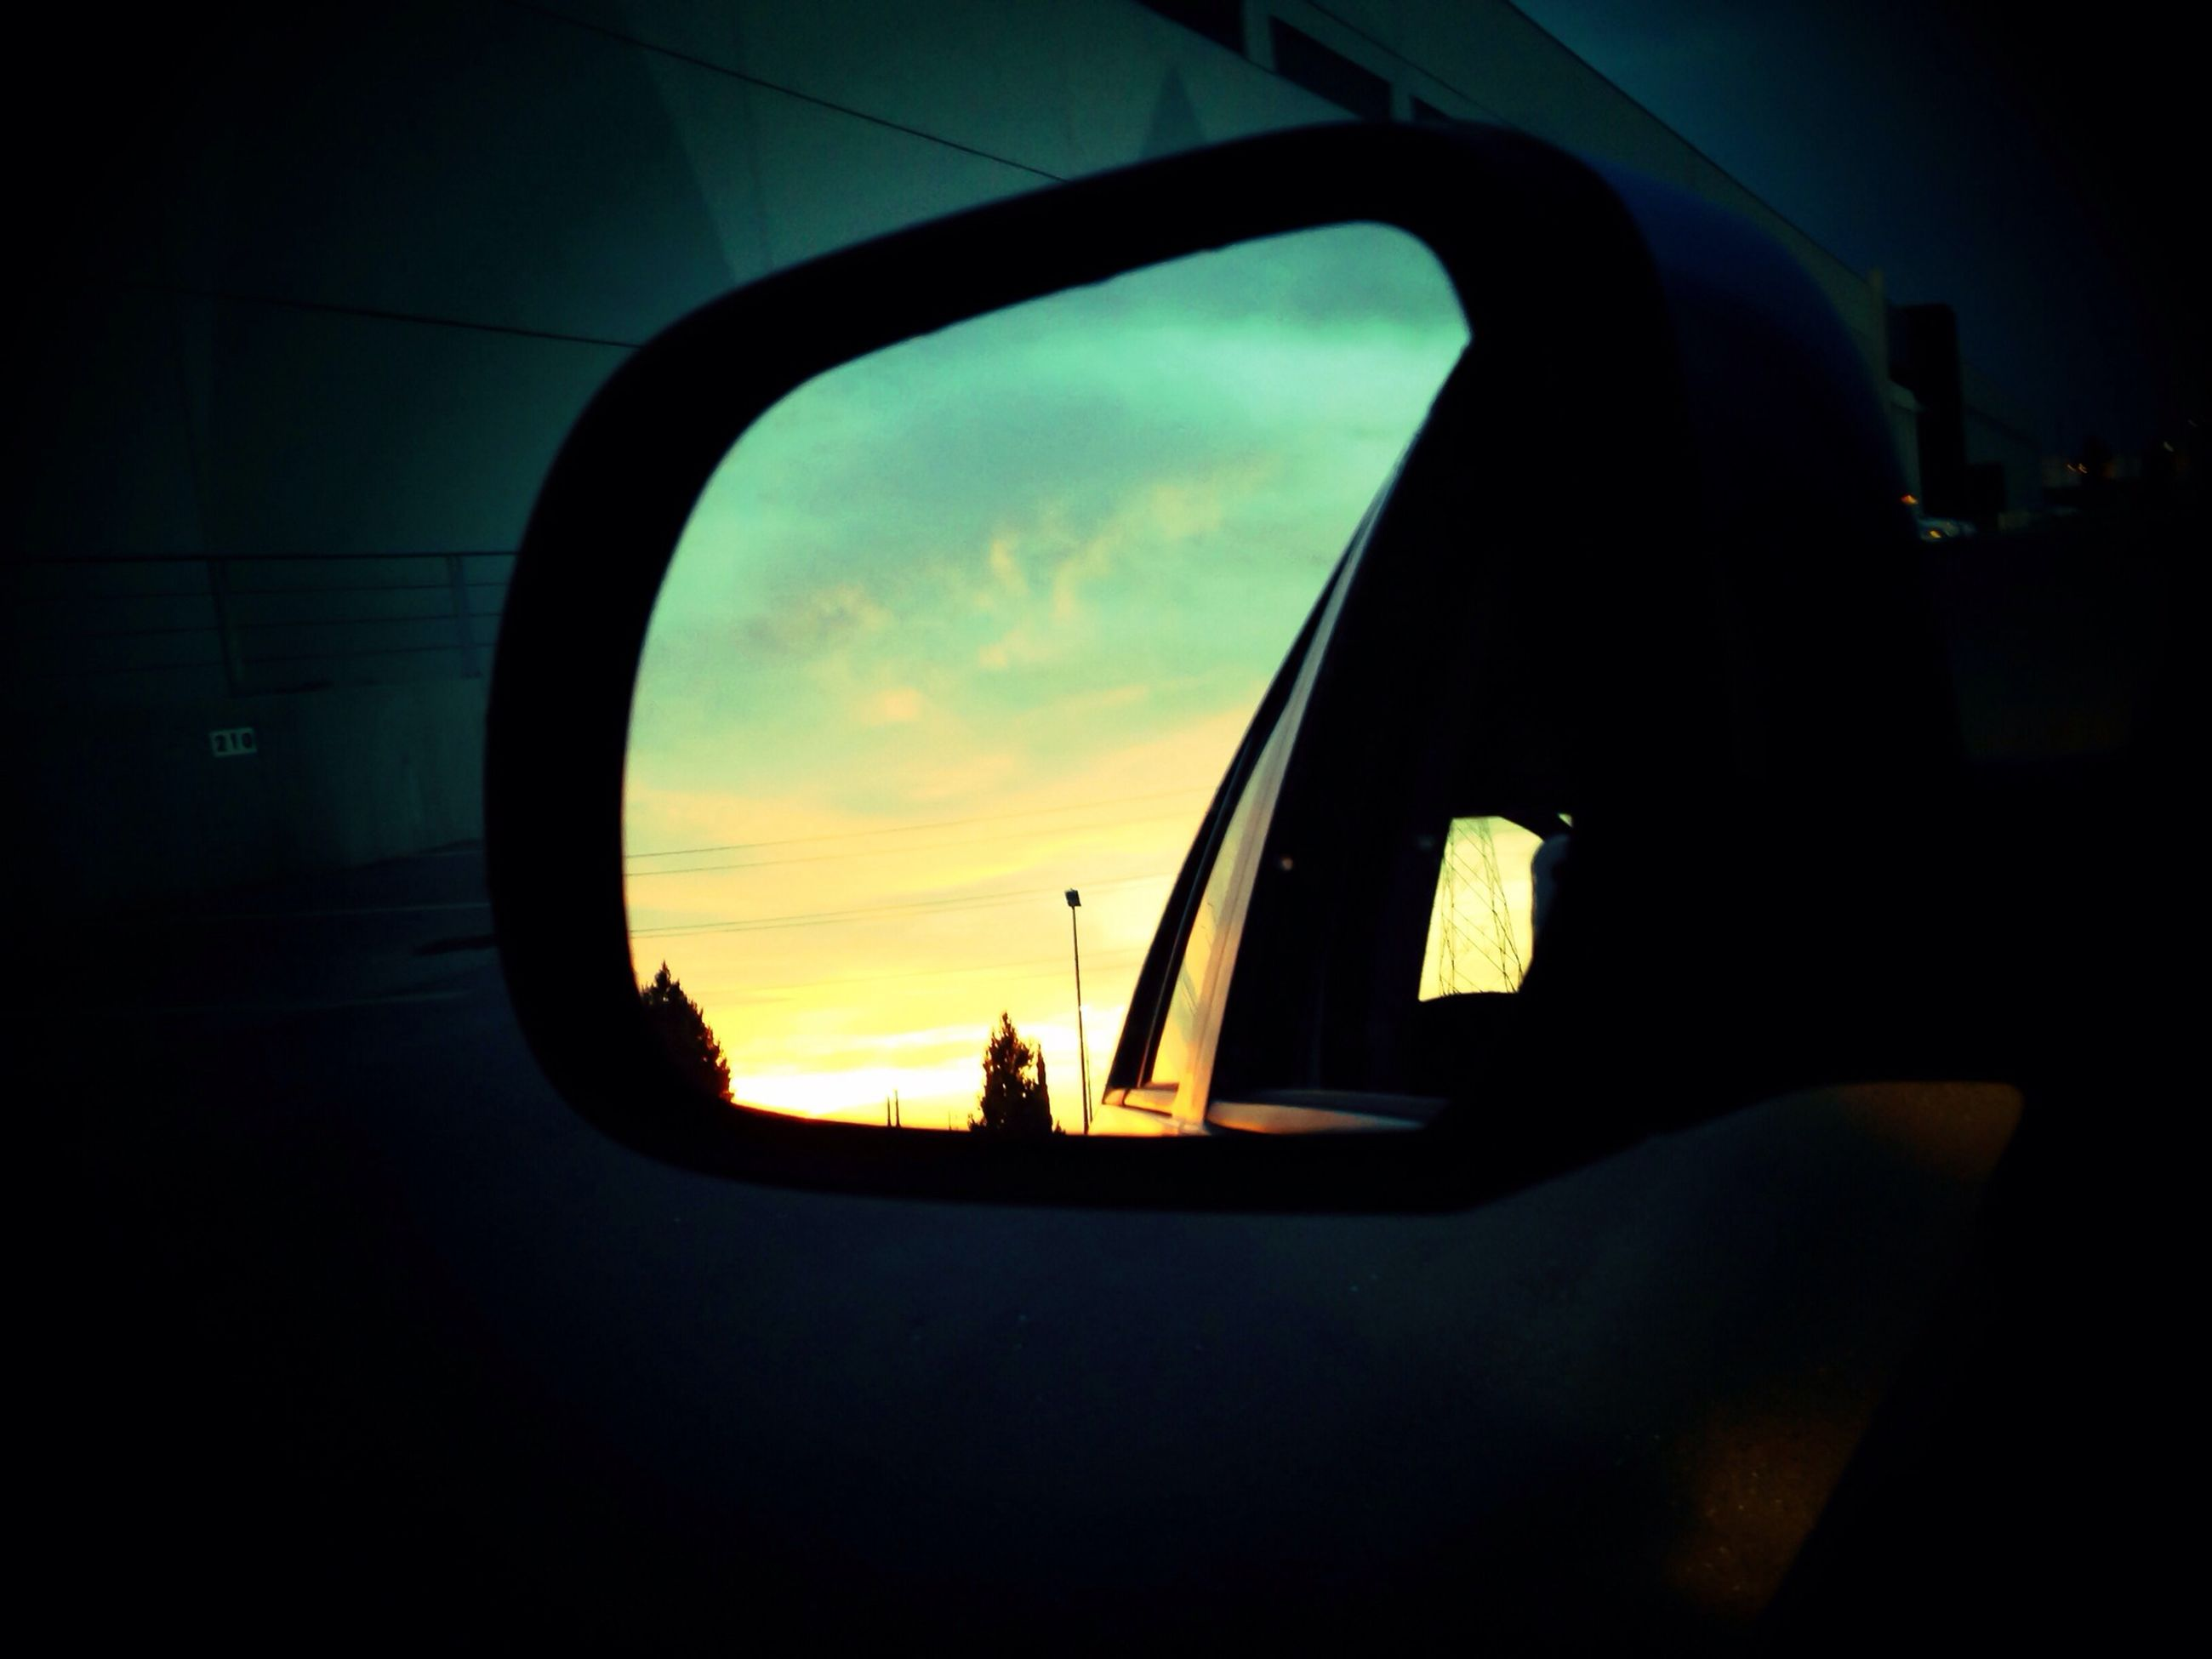 transportation, mode of transport, land vehicle, car, vehicle interior, sunset, sky, silhouette, travel, reflection, side-view mirror, on the move, window, glass - material, road, airplane, cloud - sky, car interior, journey, transparent